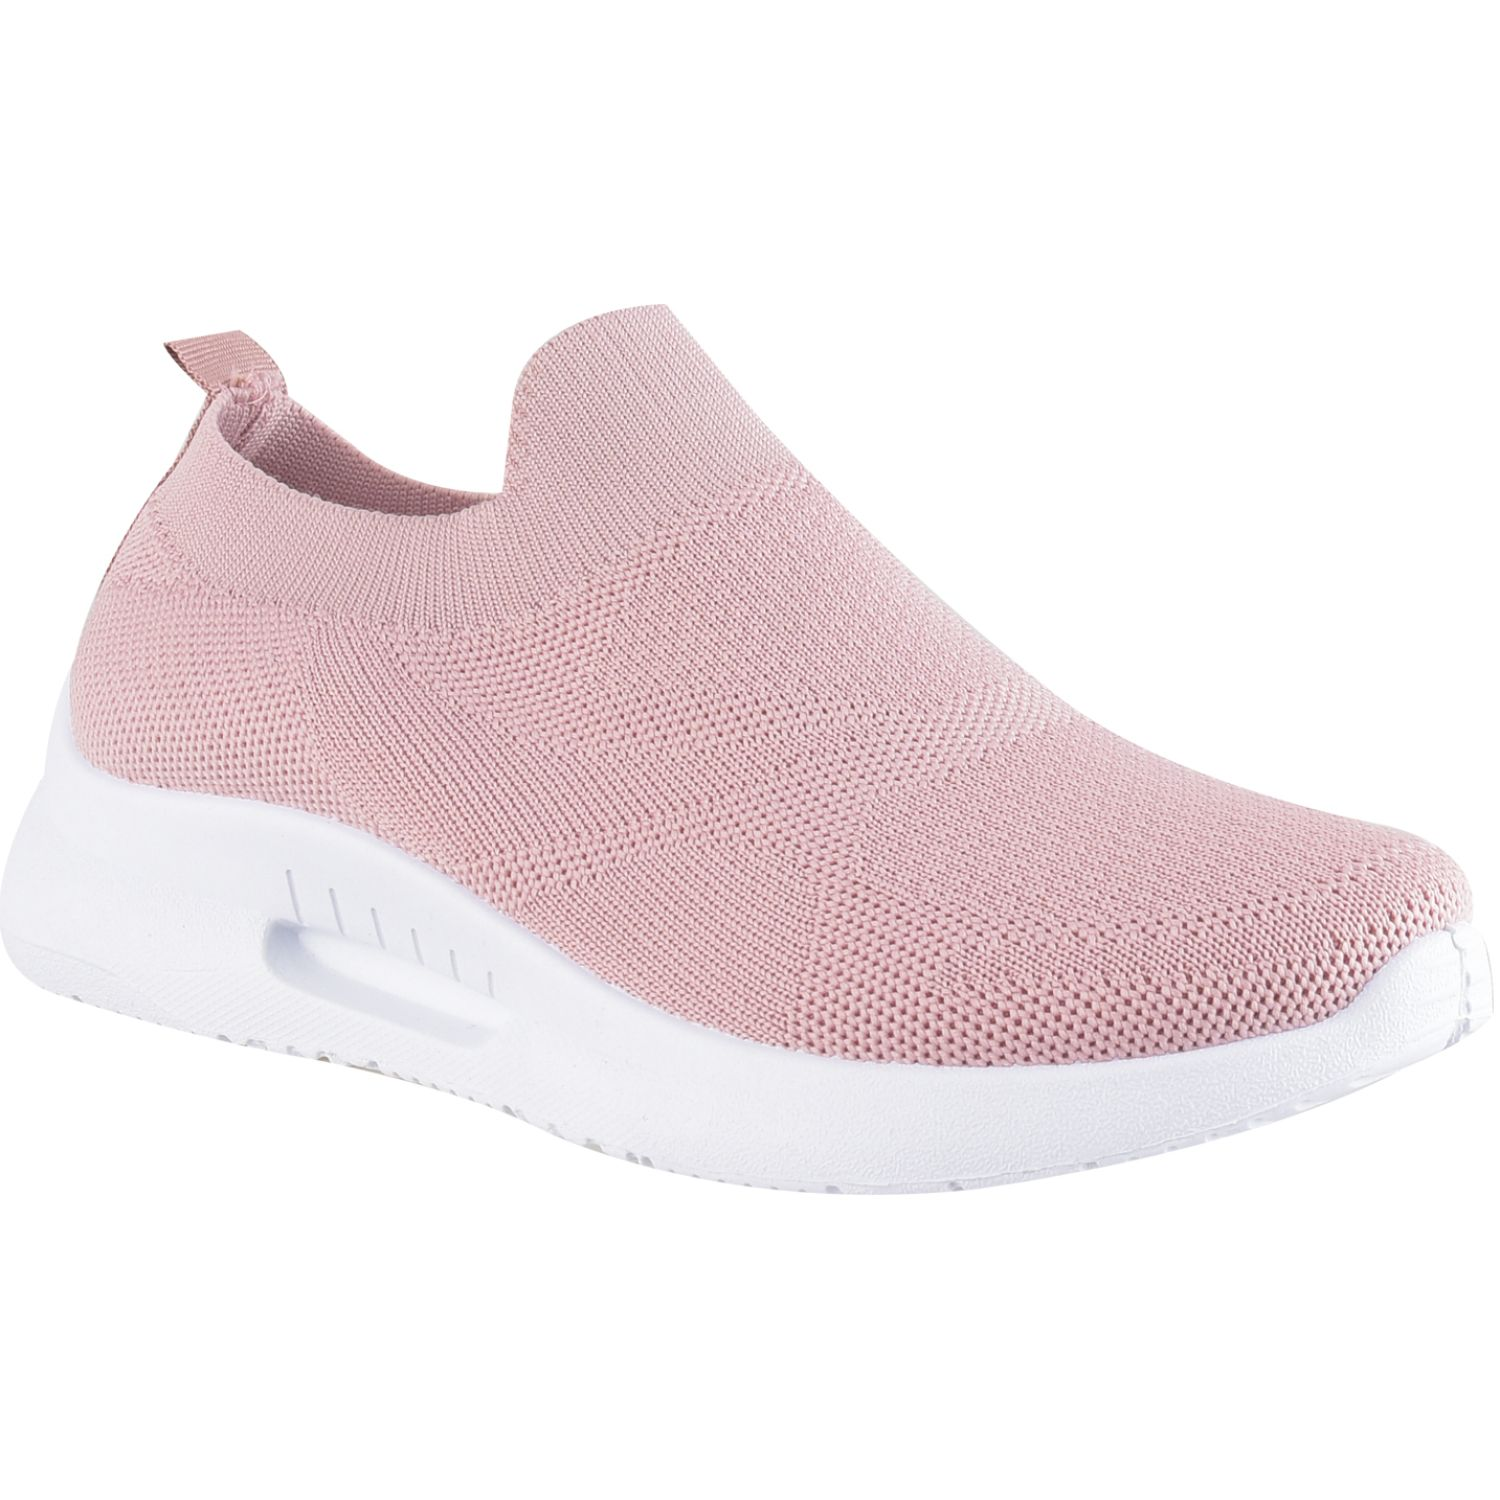 Platanitos z 5906 Rosado Zapatillas Fashion